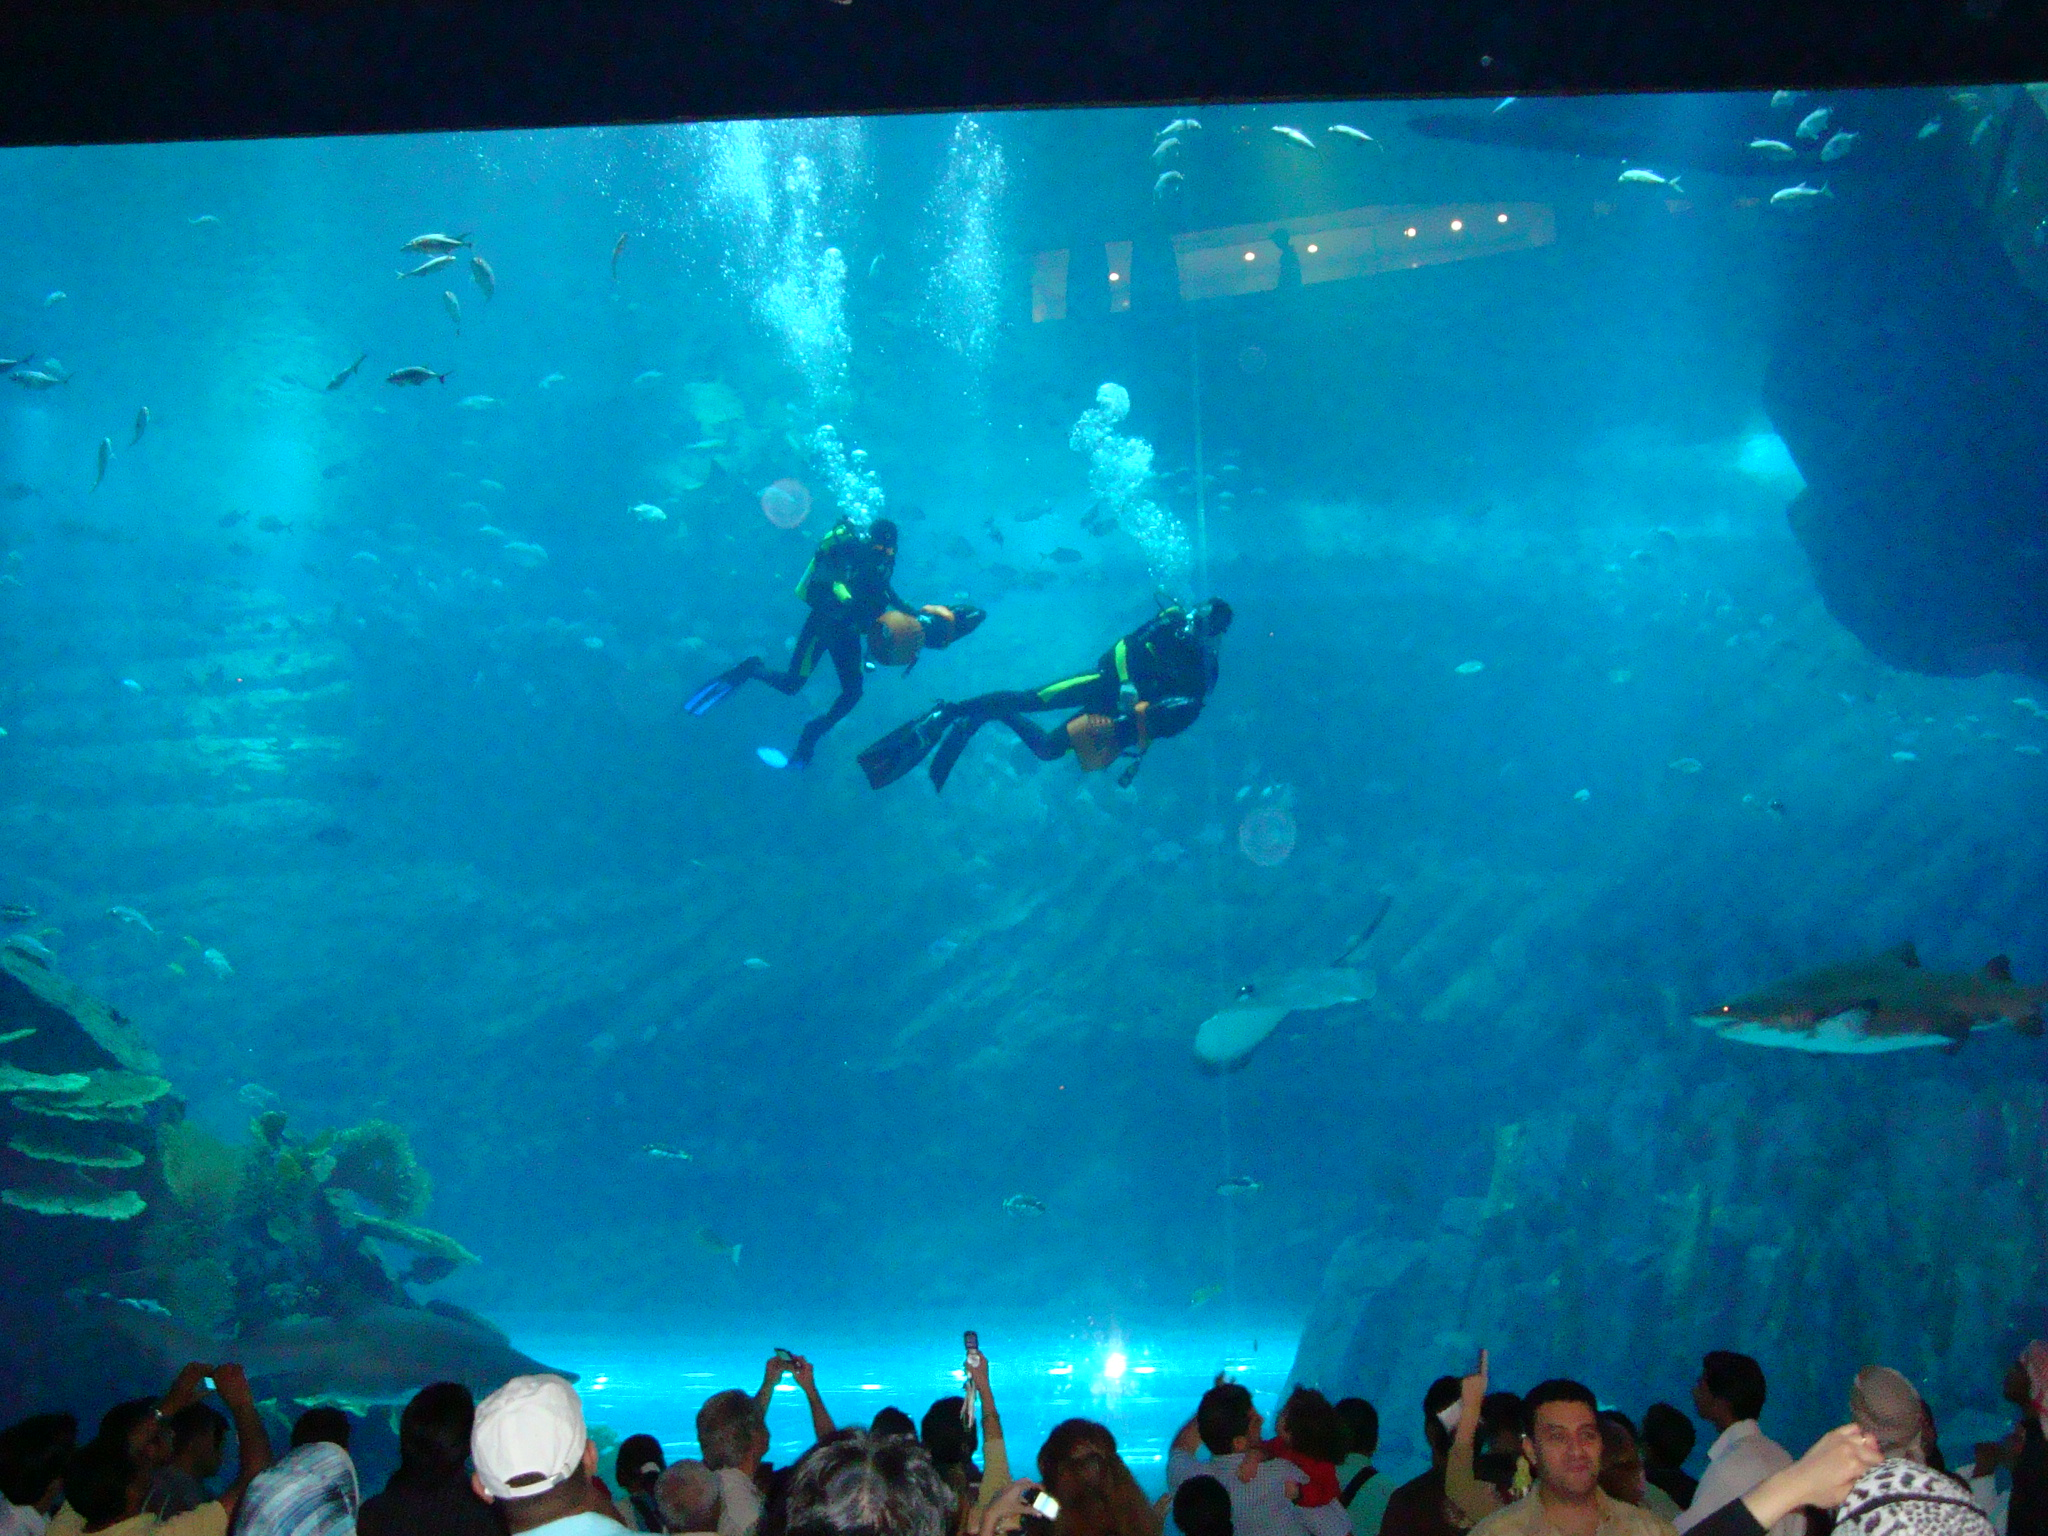 File:Dubai Mall Aquarium.jpg - Wikimedia Commons